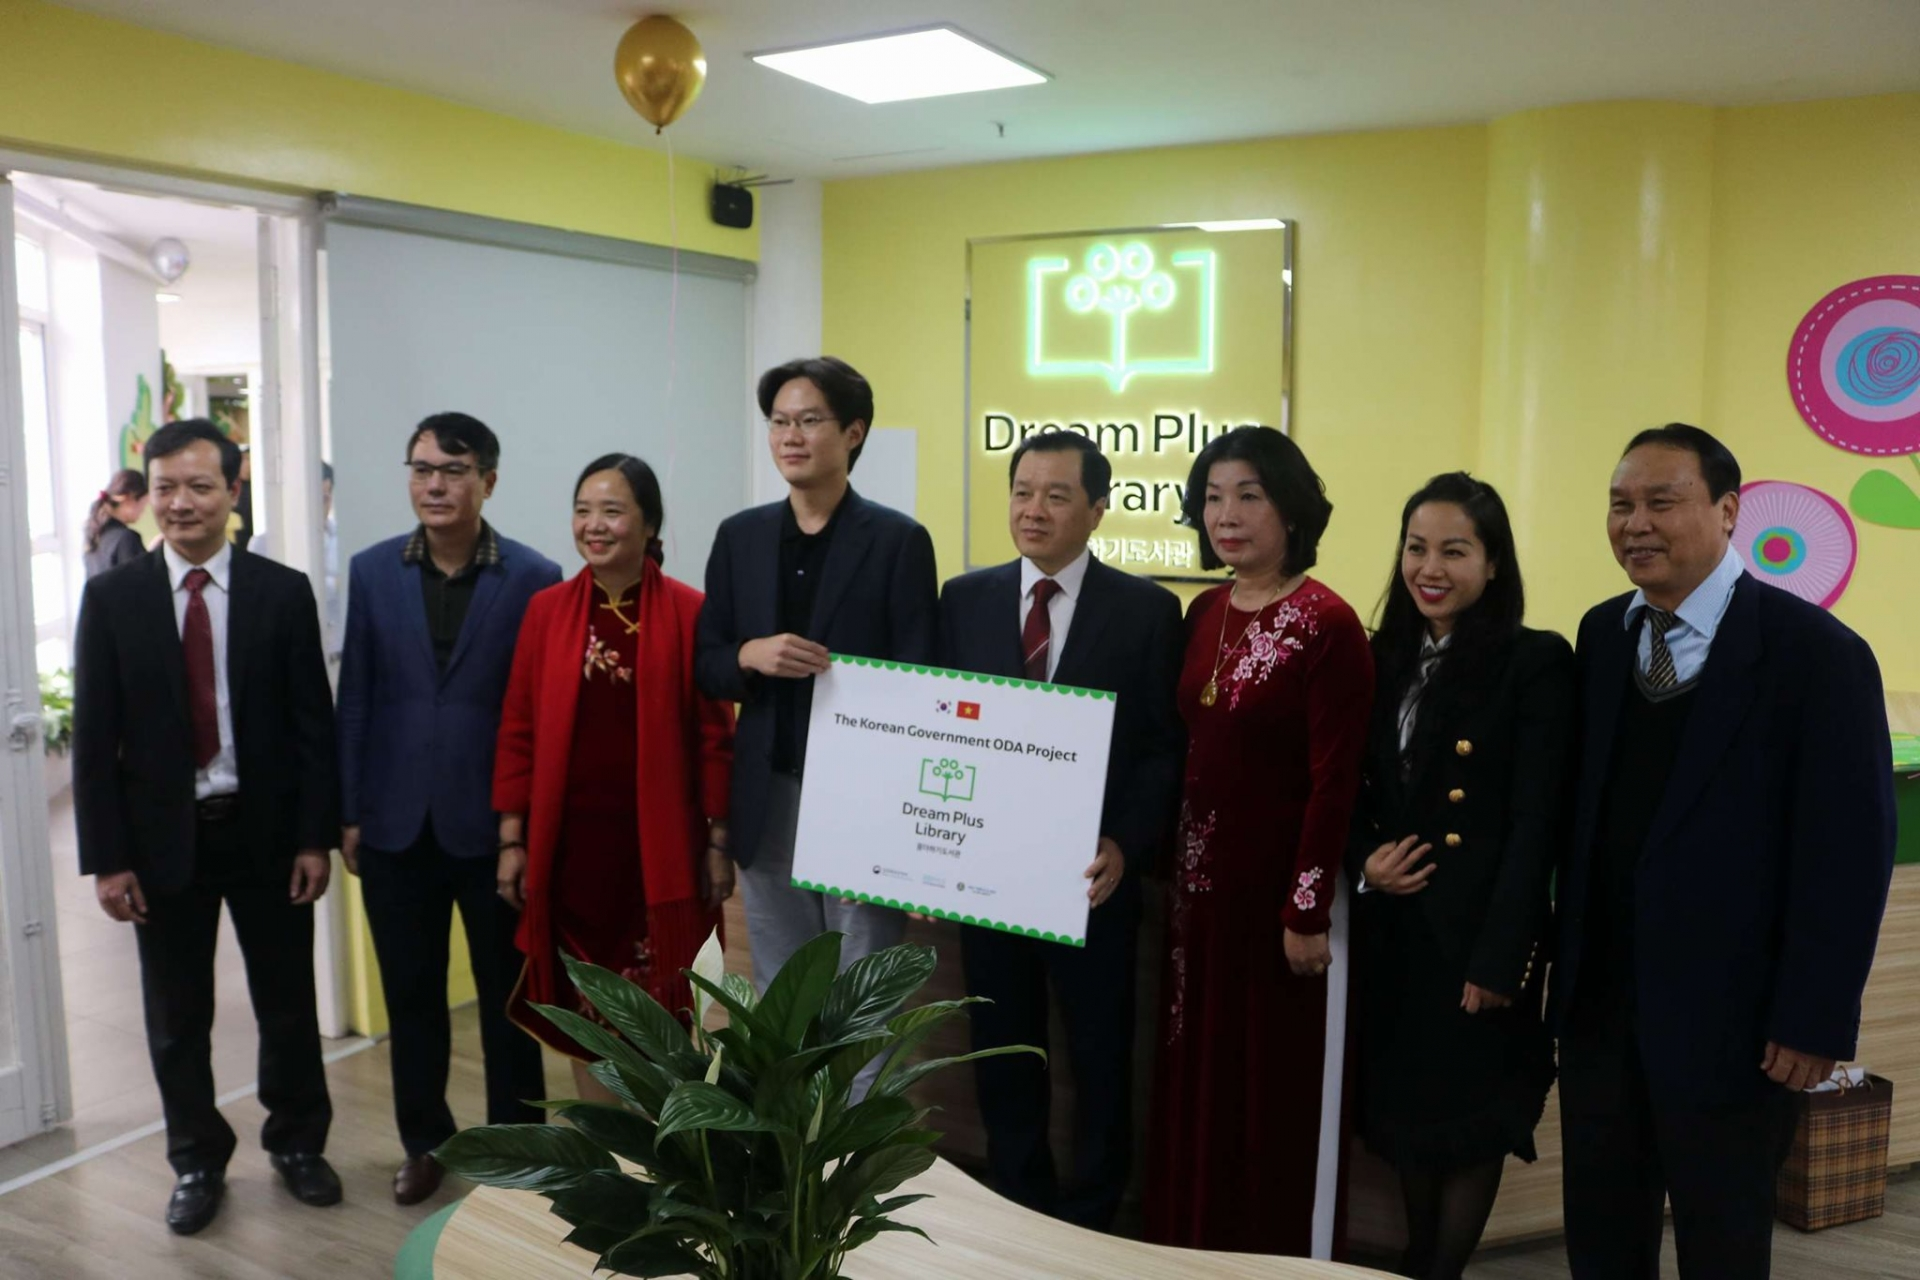 RoK sponsored Dream Plus Library launched at Hanoi Library